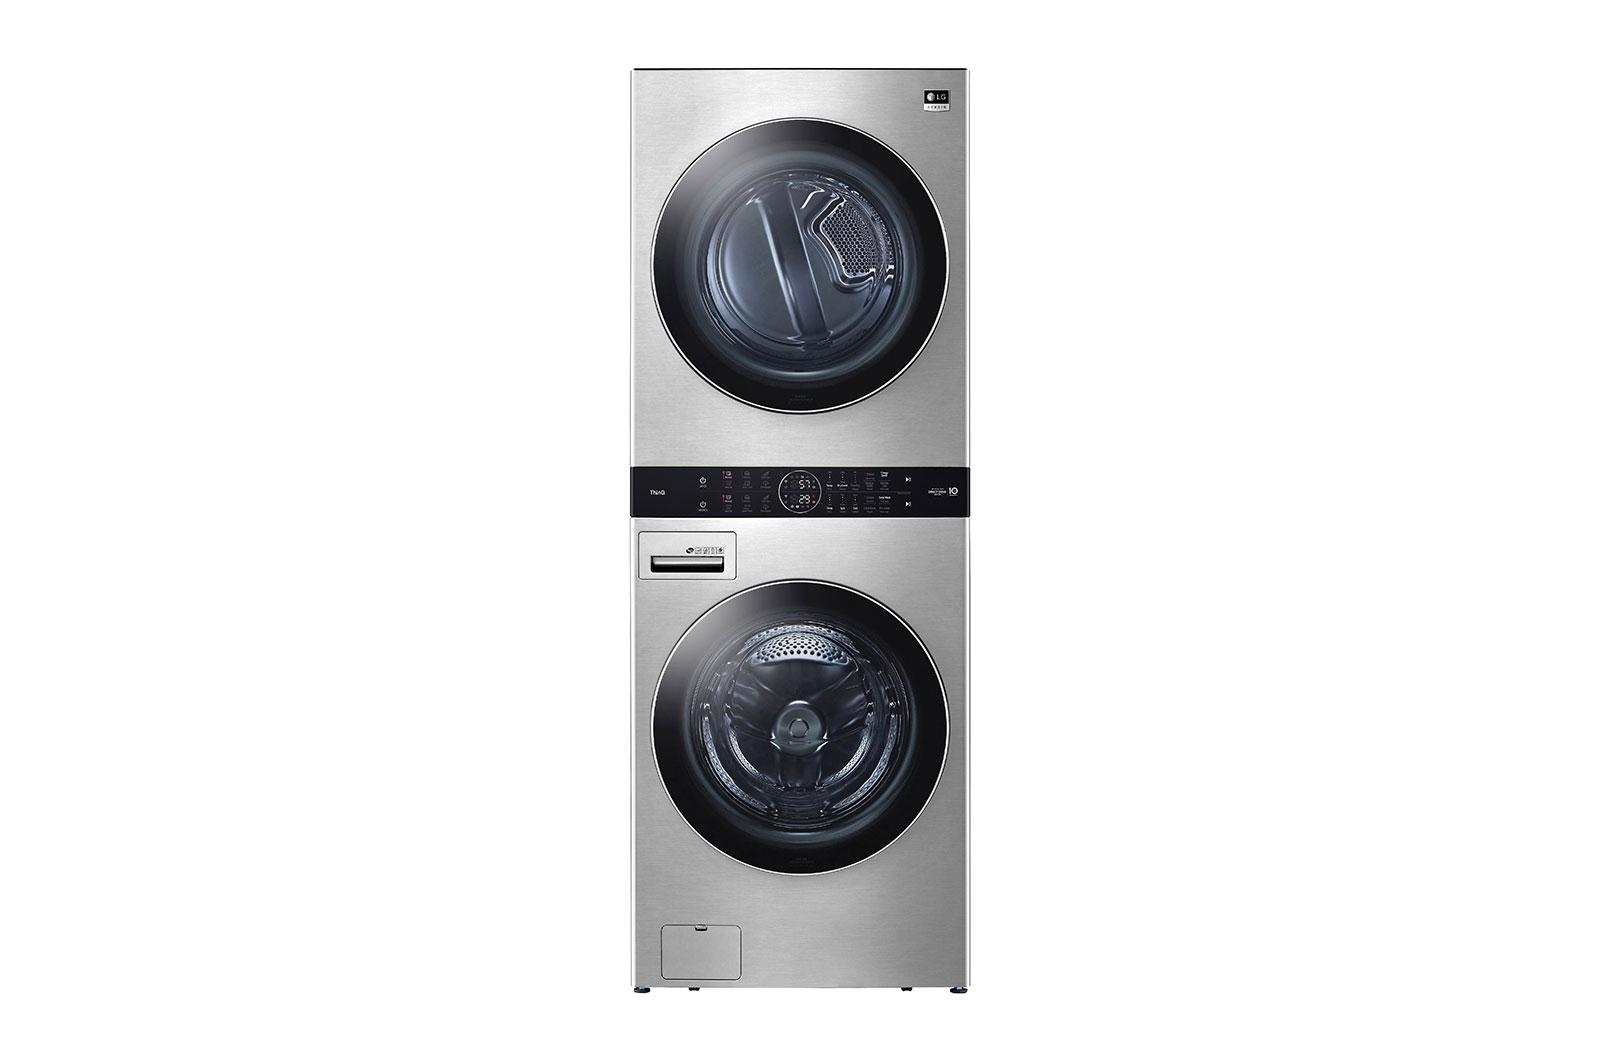 LG AppliancesLg Studio Single Unit Front Load Washtower™ With Center Control™ 5.0 Cu. Ft. Washer And 7.4 Cu. Ft. Electric Dryer